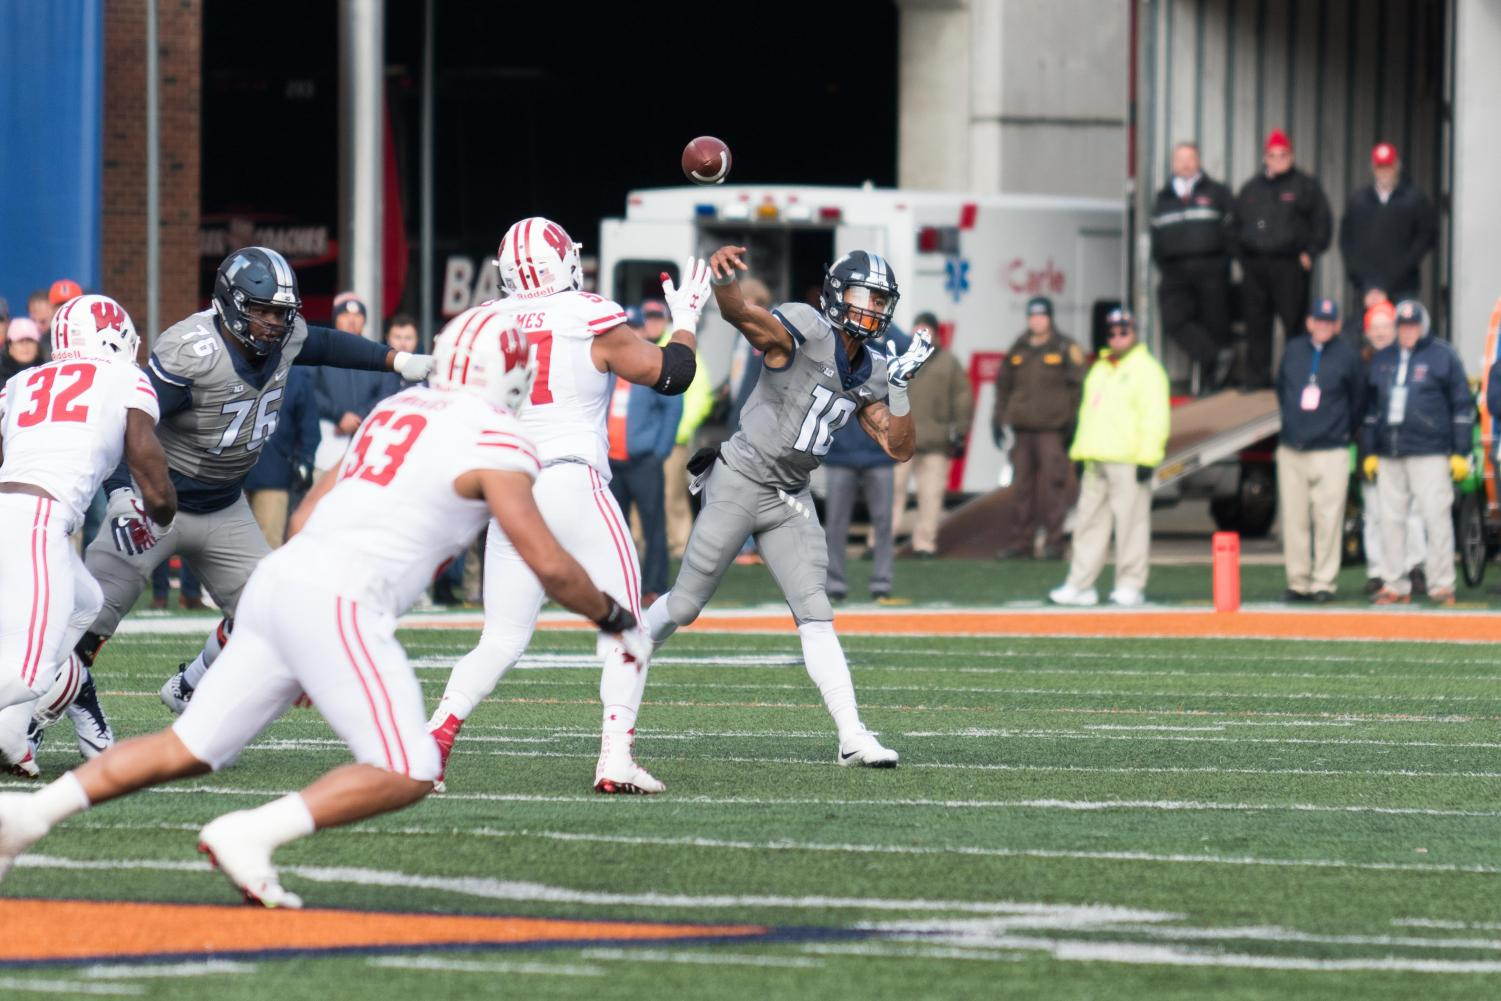 Illinois quarterback Cam Thomas throws a pass under pressure during the game against Wisconsin on Saturday, Oct 28. The Illini lost 10-24.